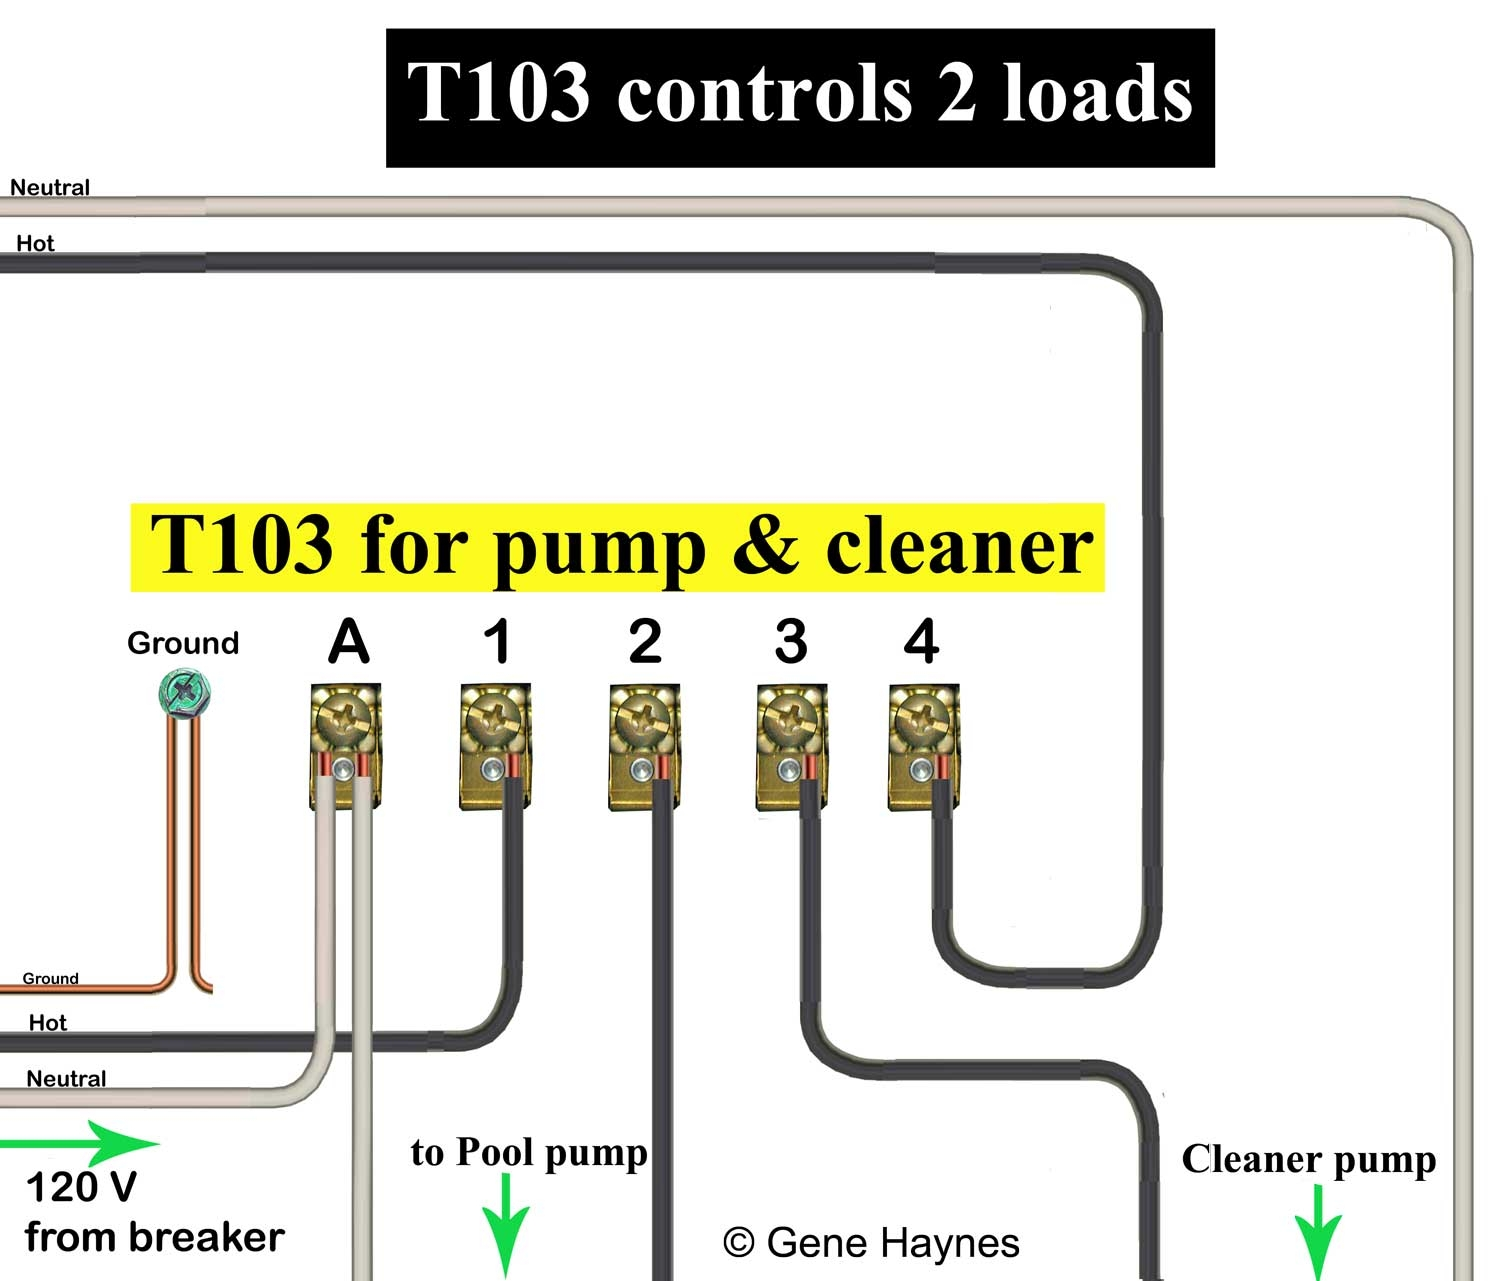 intermatic t103 wiring diagram Download-swimming pool timer wiring diagram Collection Intermatic Pool Timer Wiring Diagram Best How to Wire DOWNLOAD Wiring Diagram 15-h